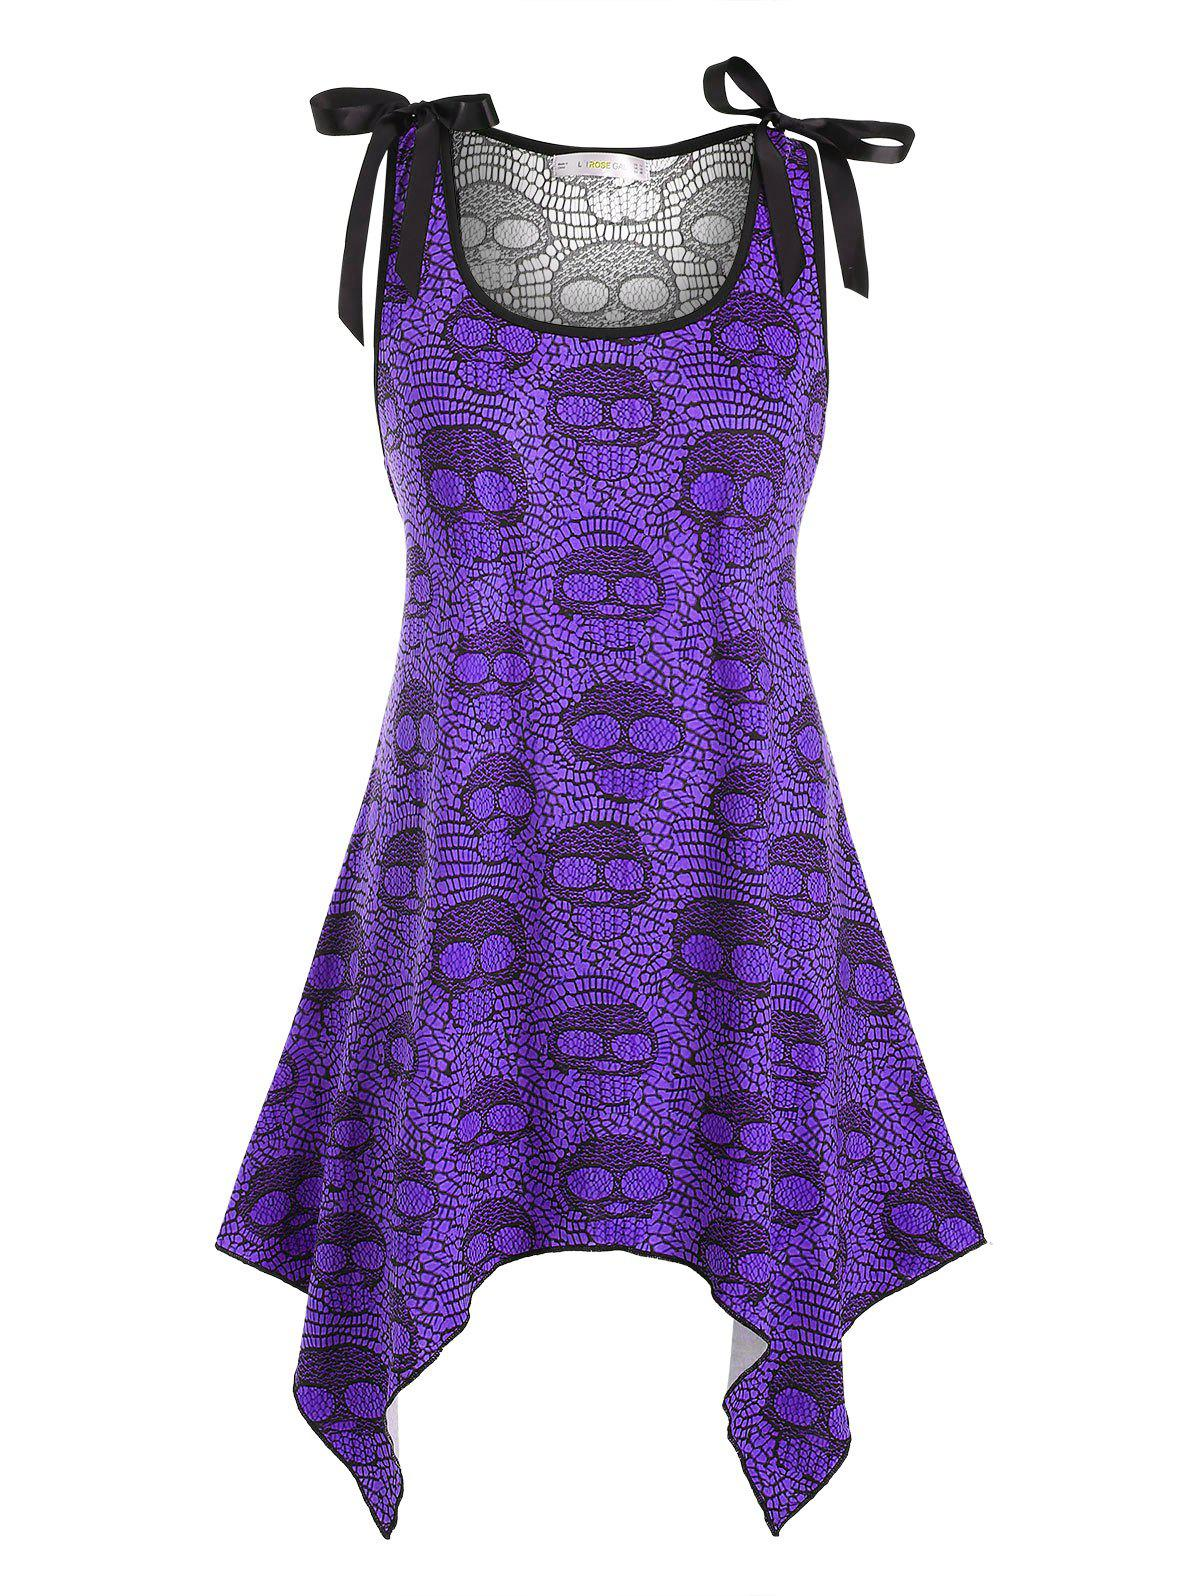 Bowknot Lace Panel Skull Halloween Plus Size Tank Top фото